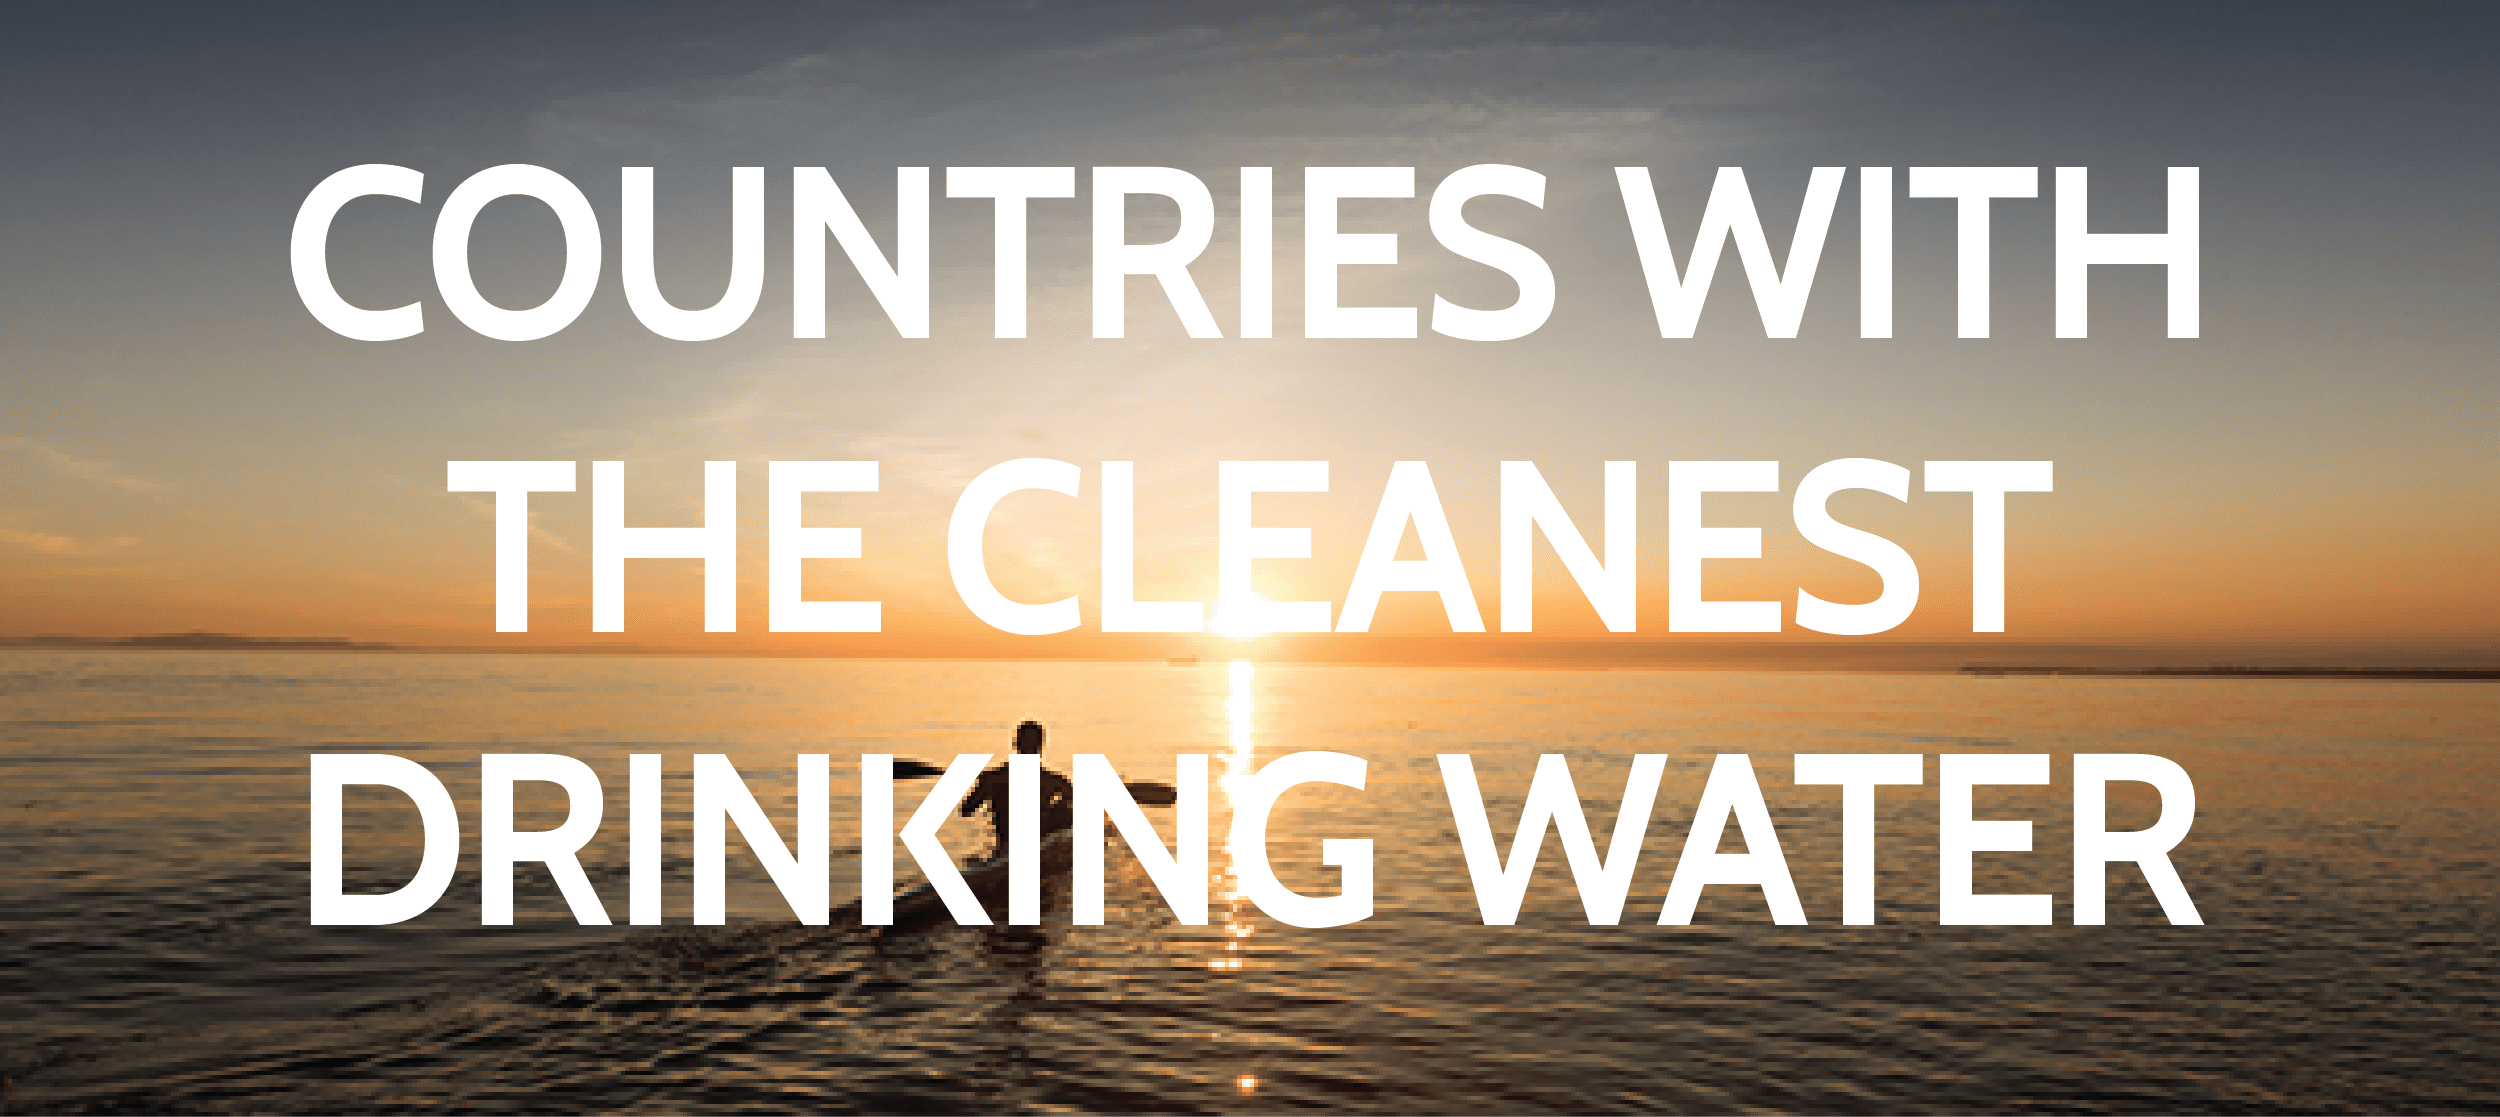 countries with the cleanest drinking water featured